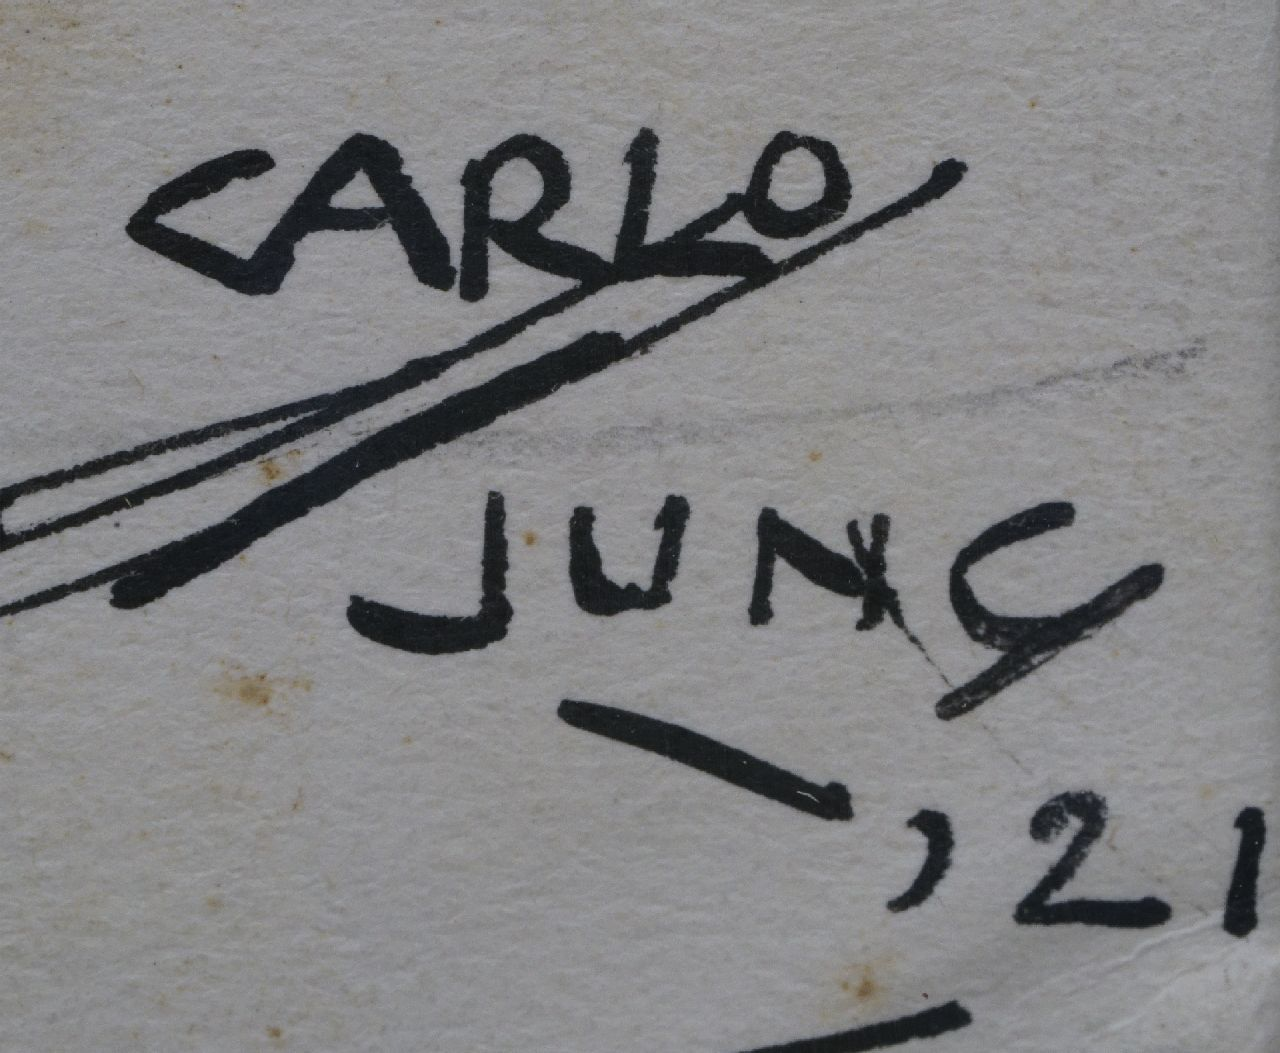 Carlo Jung signatures Beach party